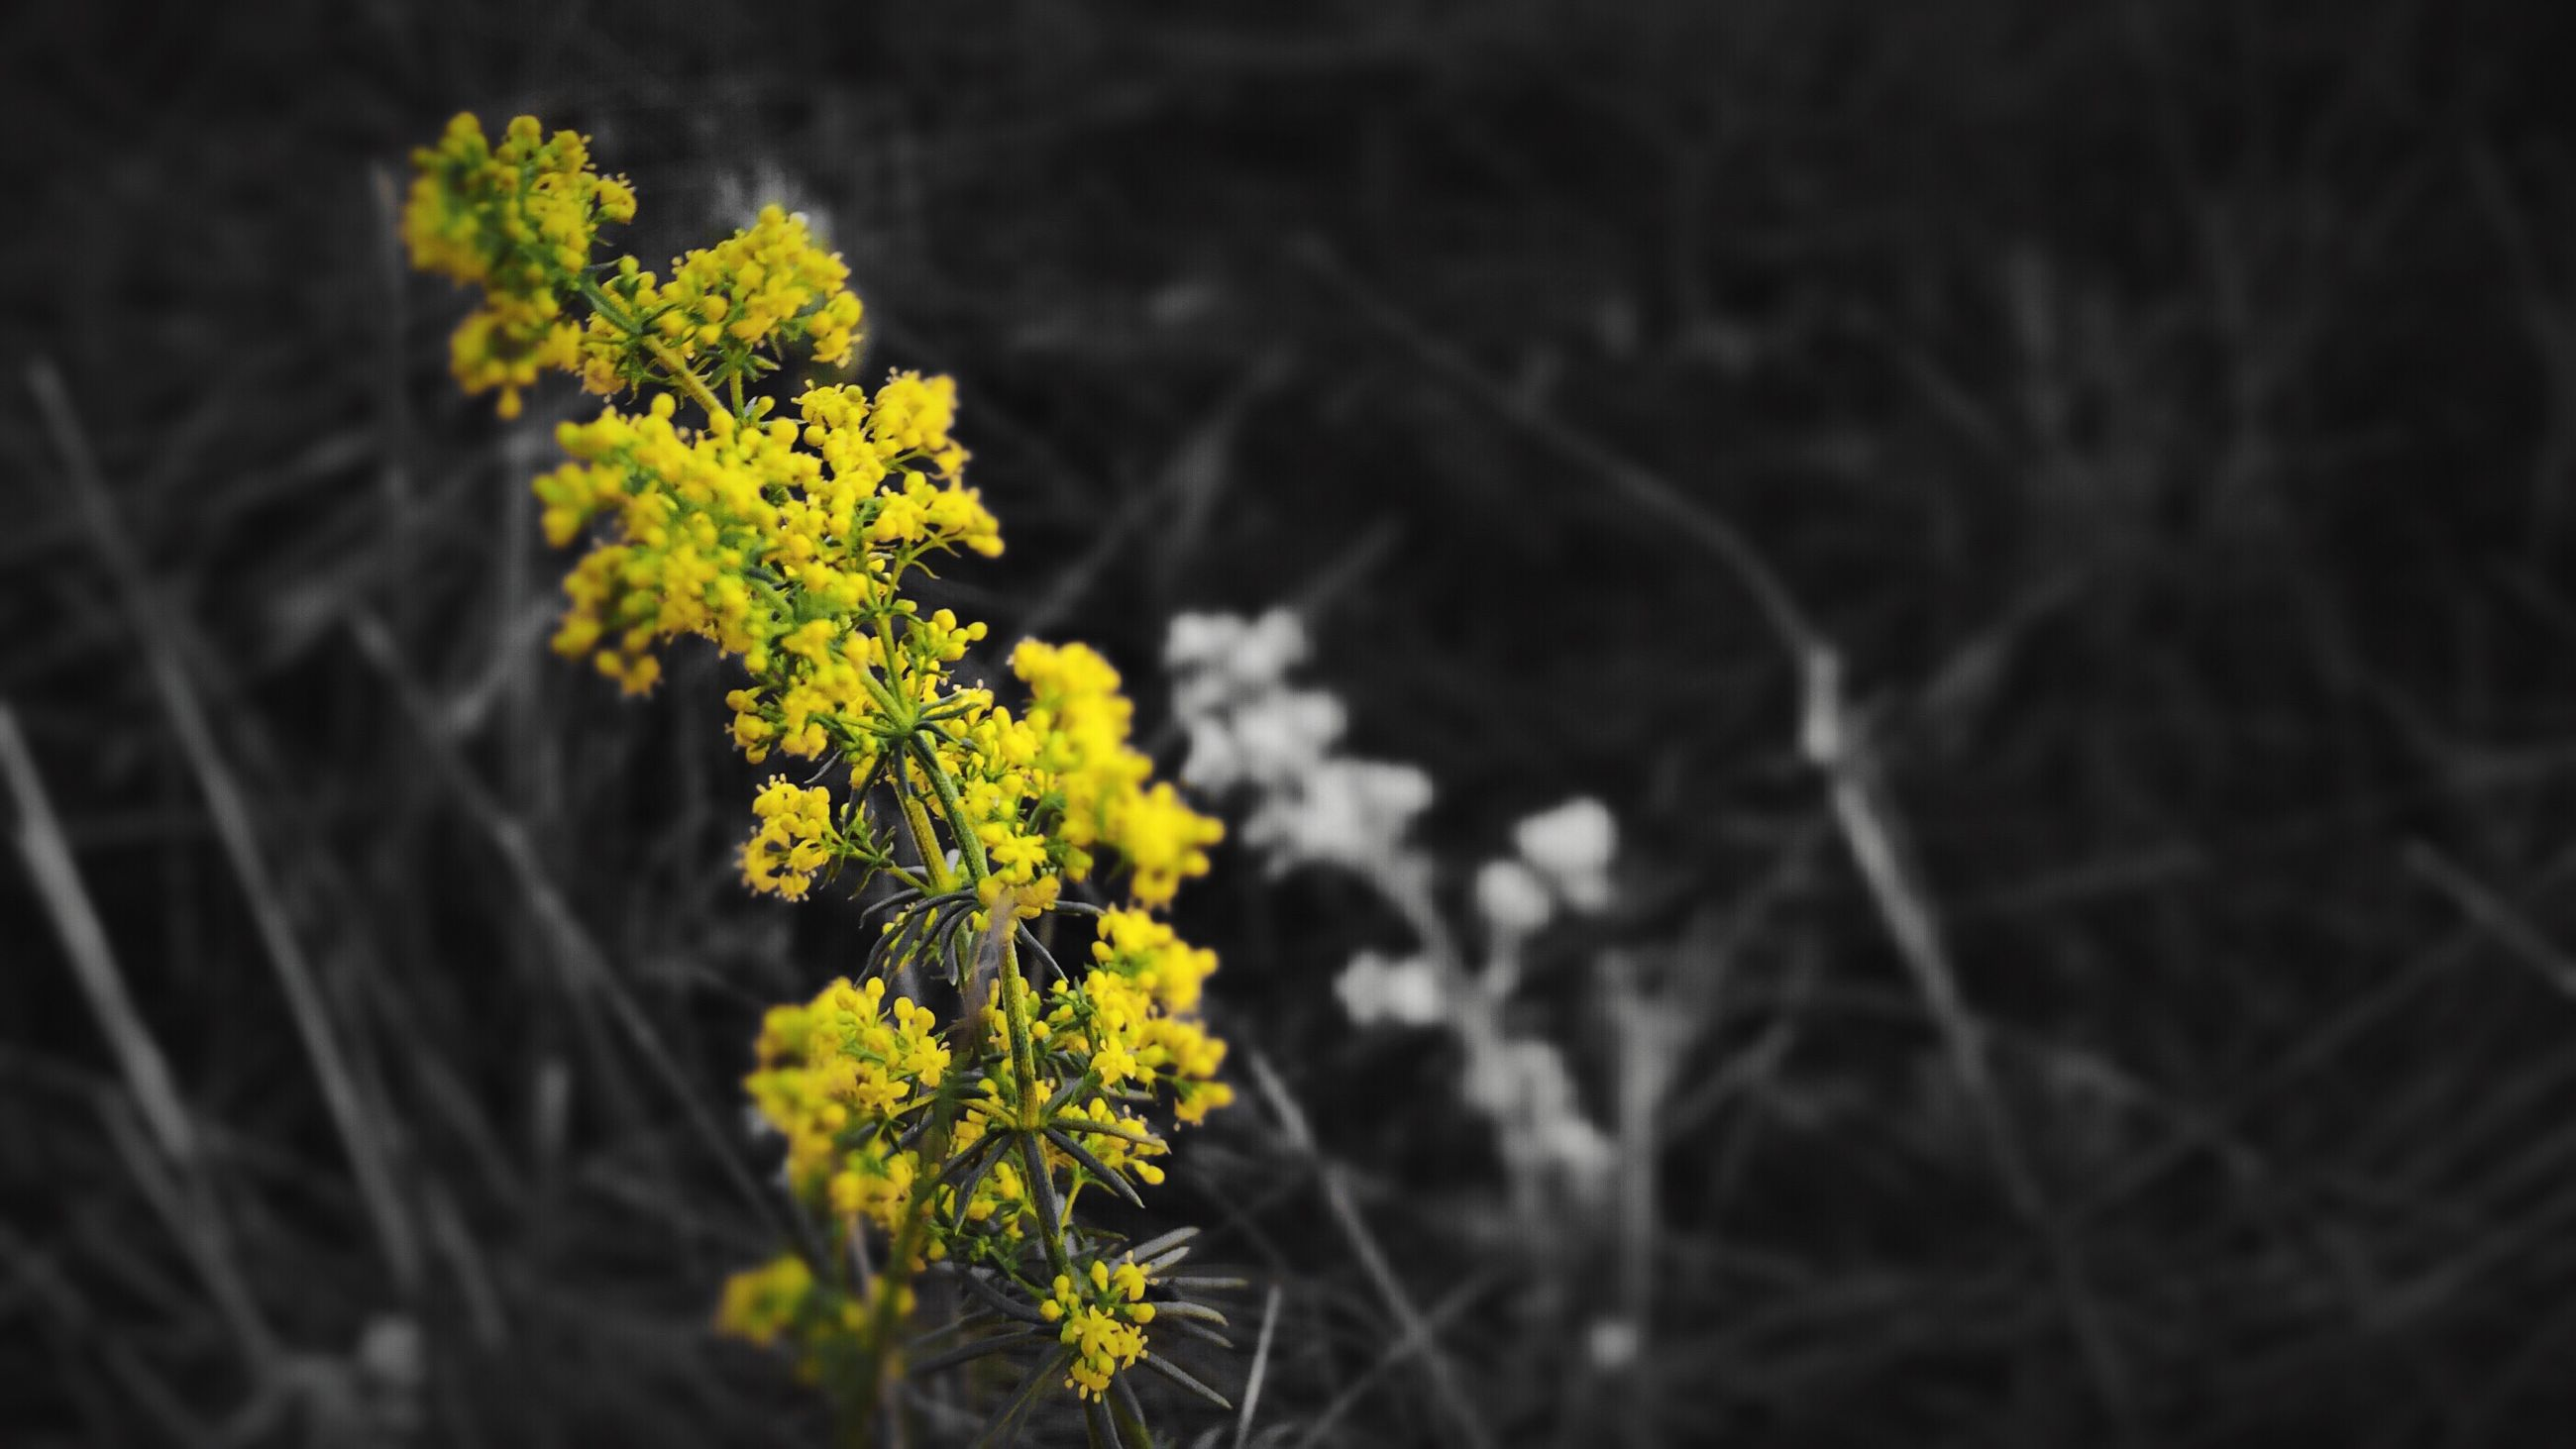 growth, flower, yellow, plant, fragility, freshness, nature, beauty in nature, focus on foreground, selective focus, close-up, field, stem, leaf, outdoors, green color, blooming, growing, no people, day